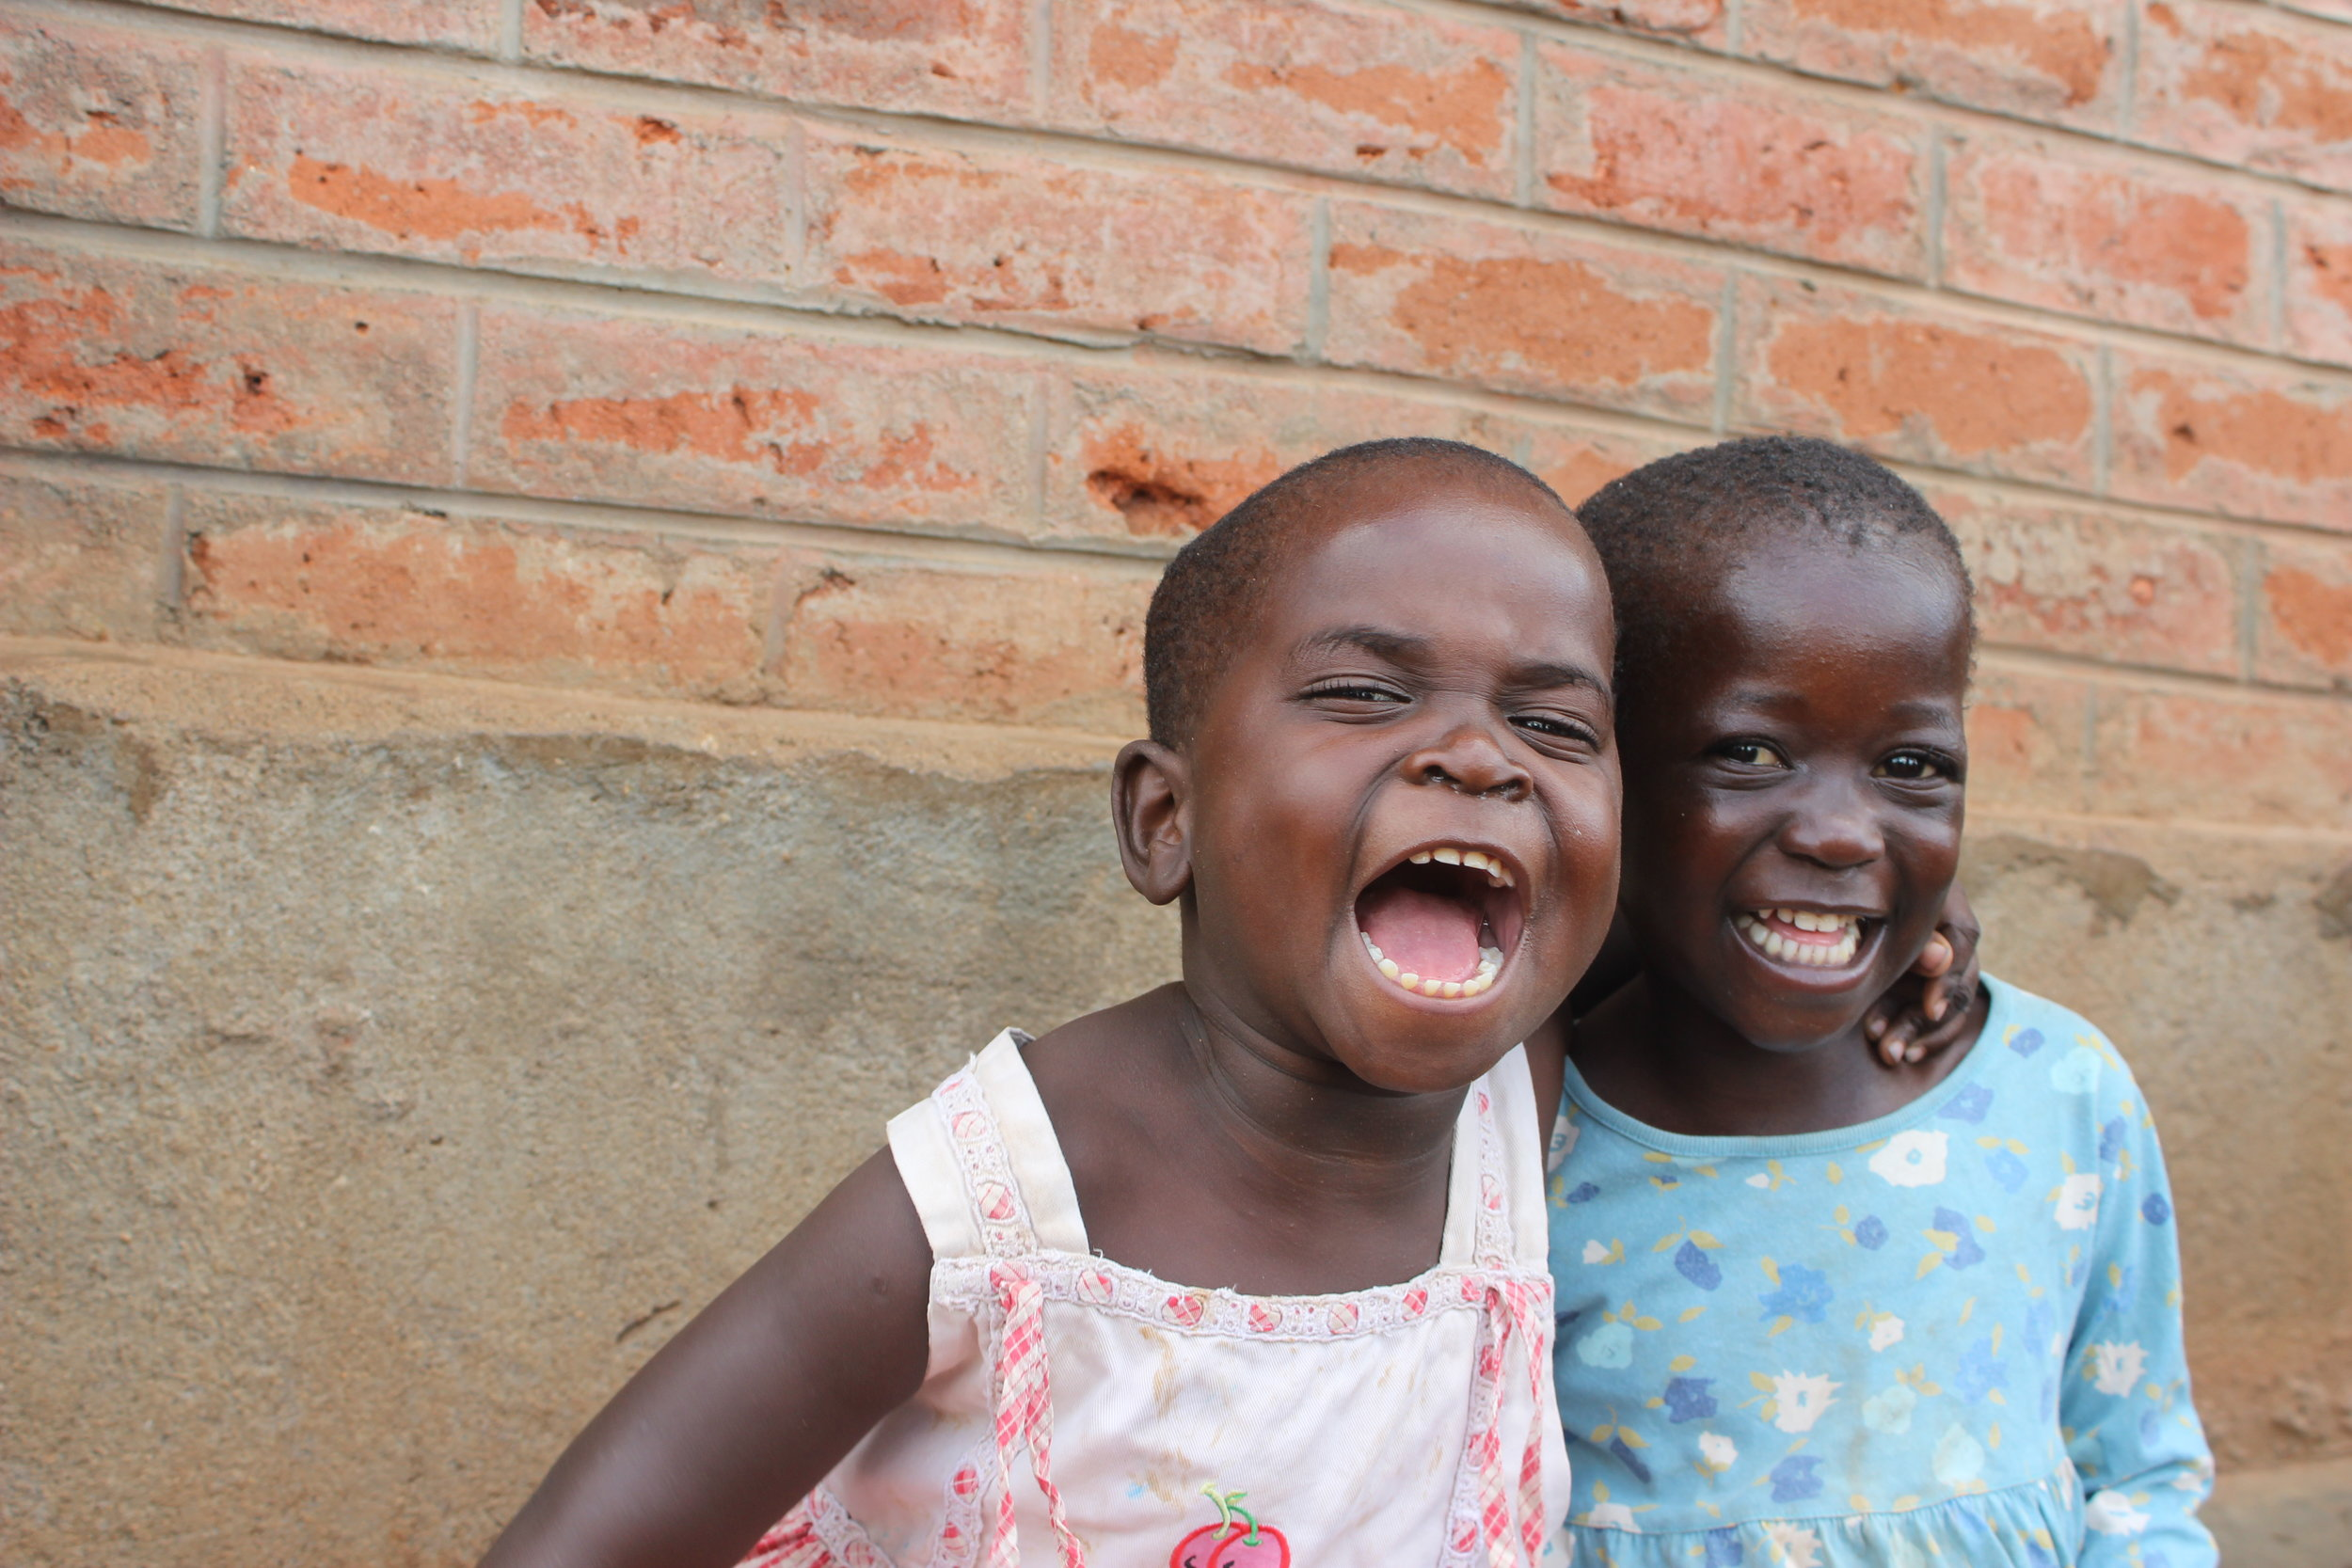 Our children's smiles shine with pure LOVE!